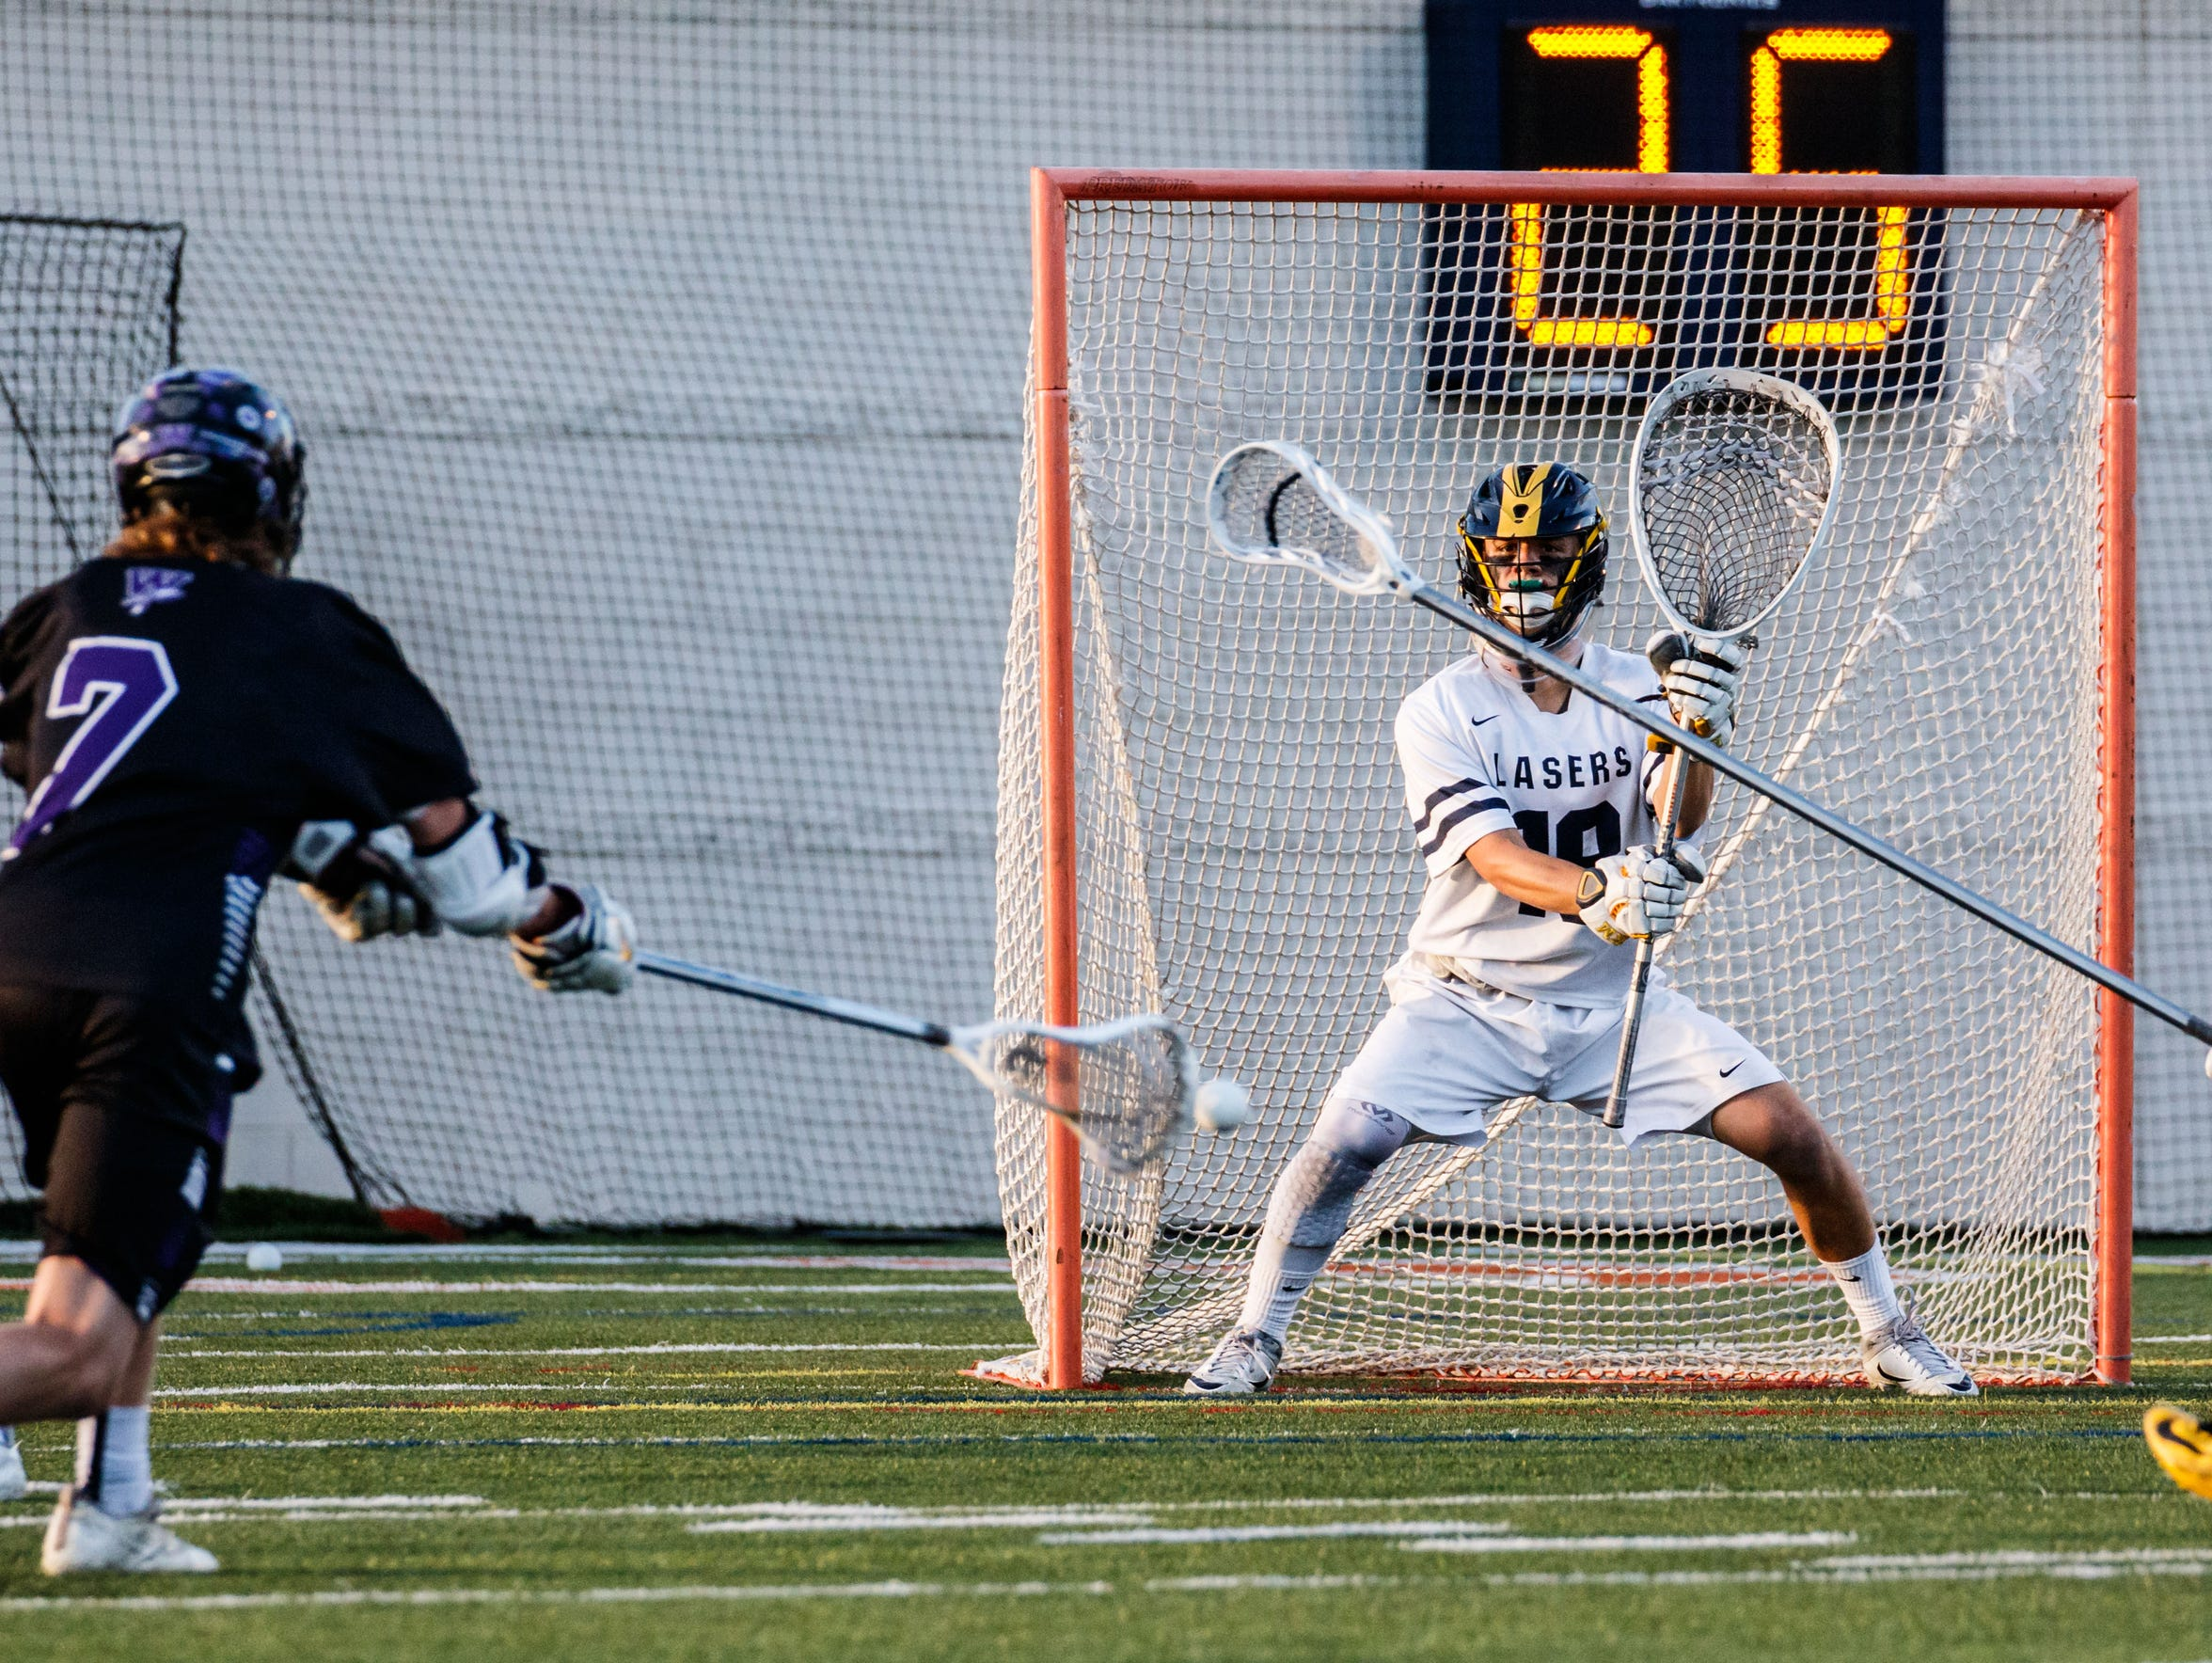 Kettle Moraine goalie Sam Shaver protects the net during